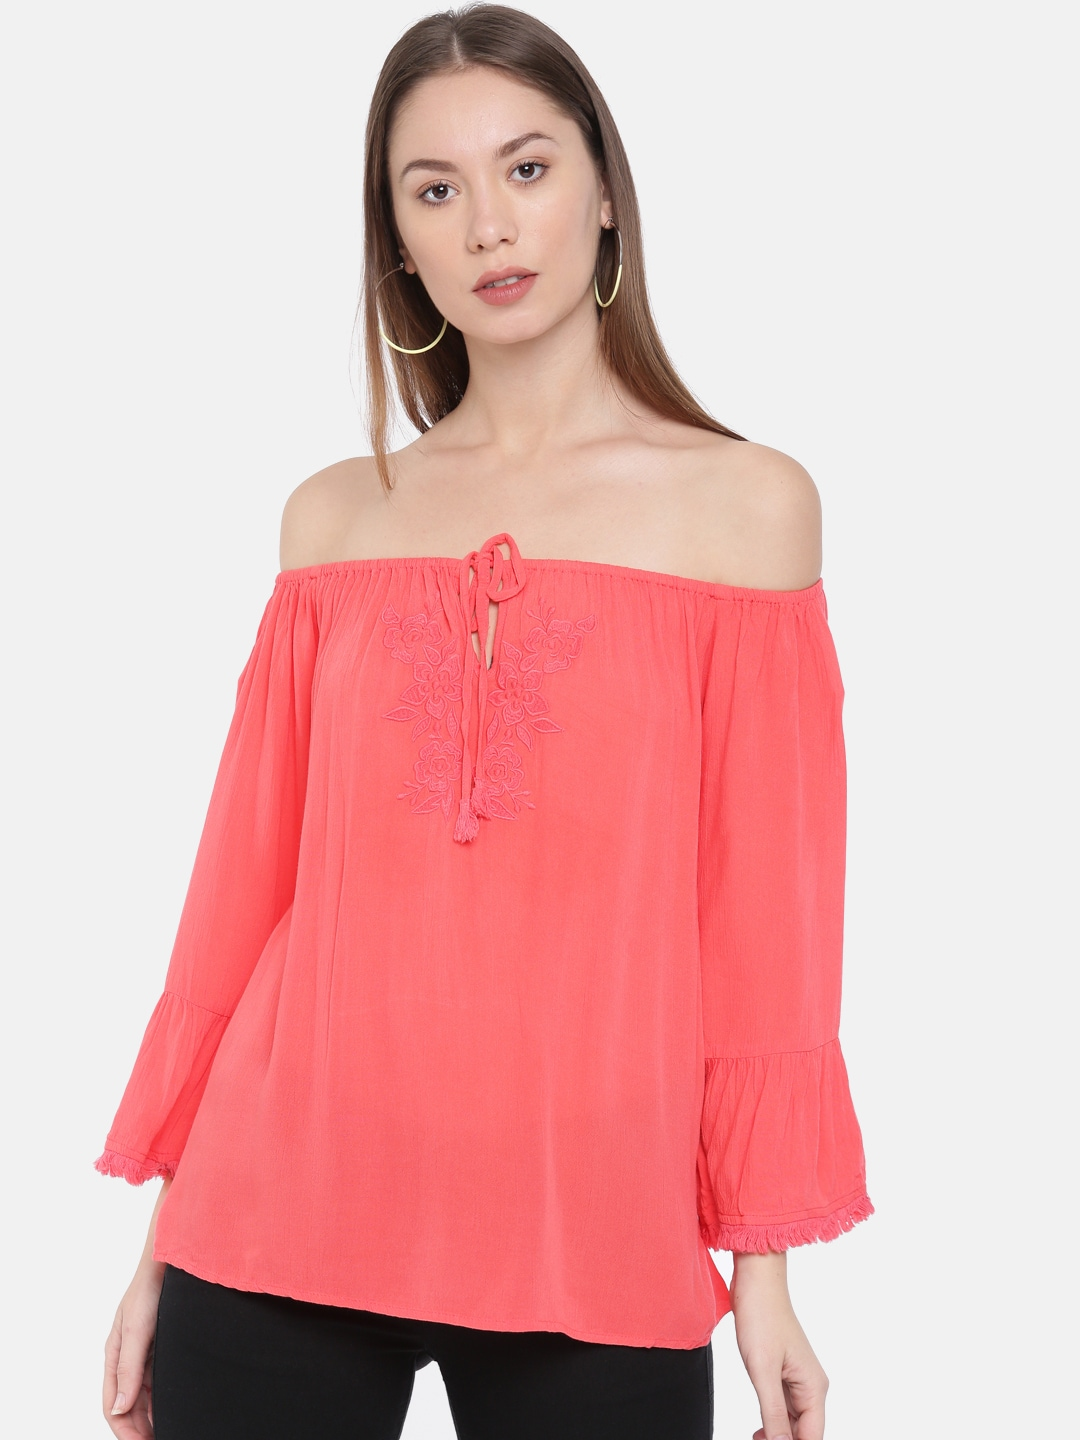 Jealous 21 Exclusive Jealous 21 Products Online in India - Myntra 5dd1db3e6